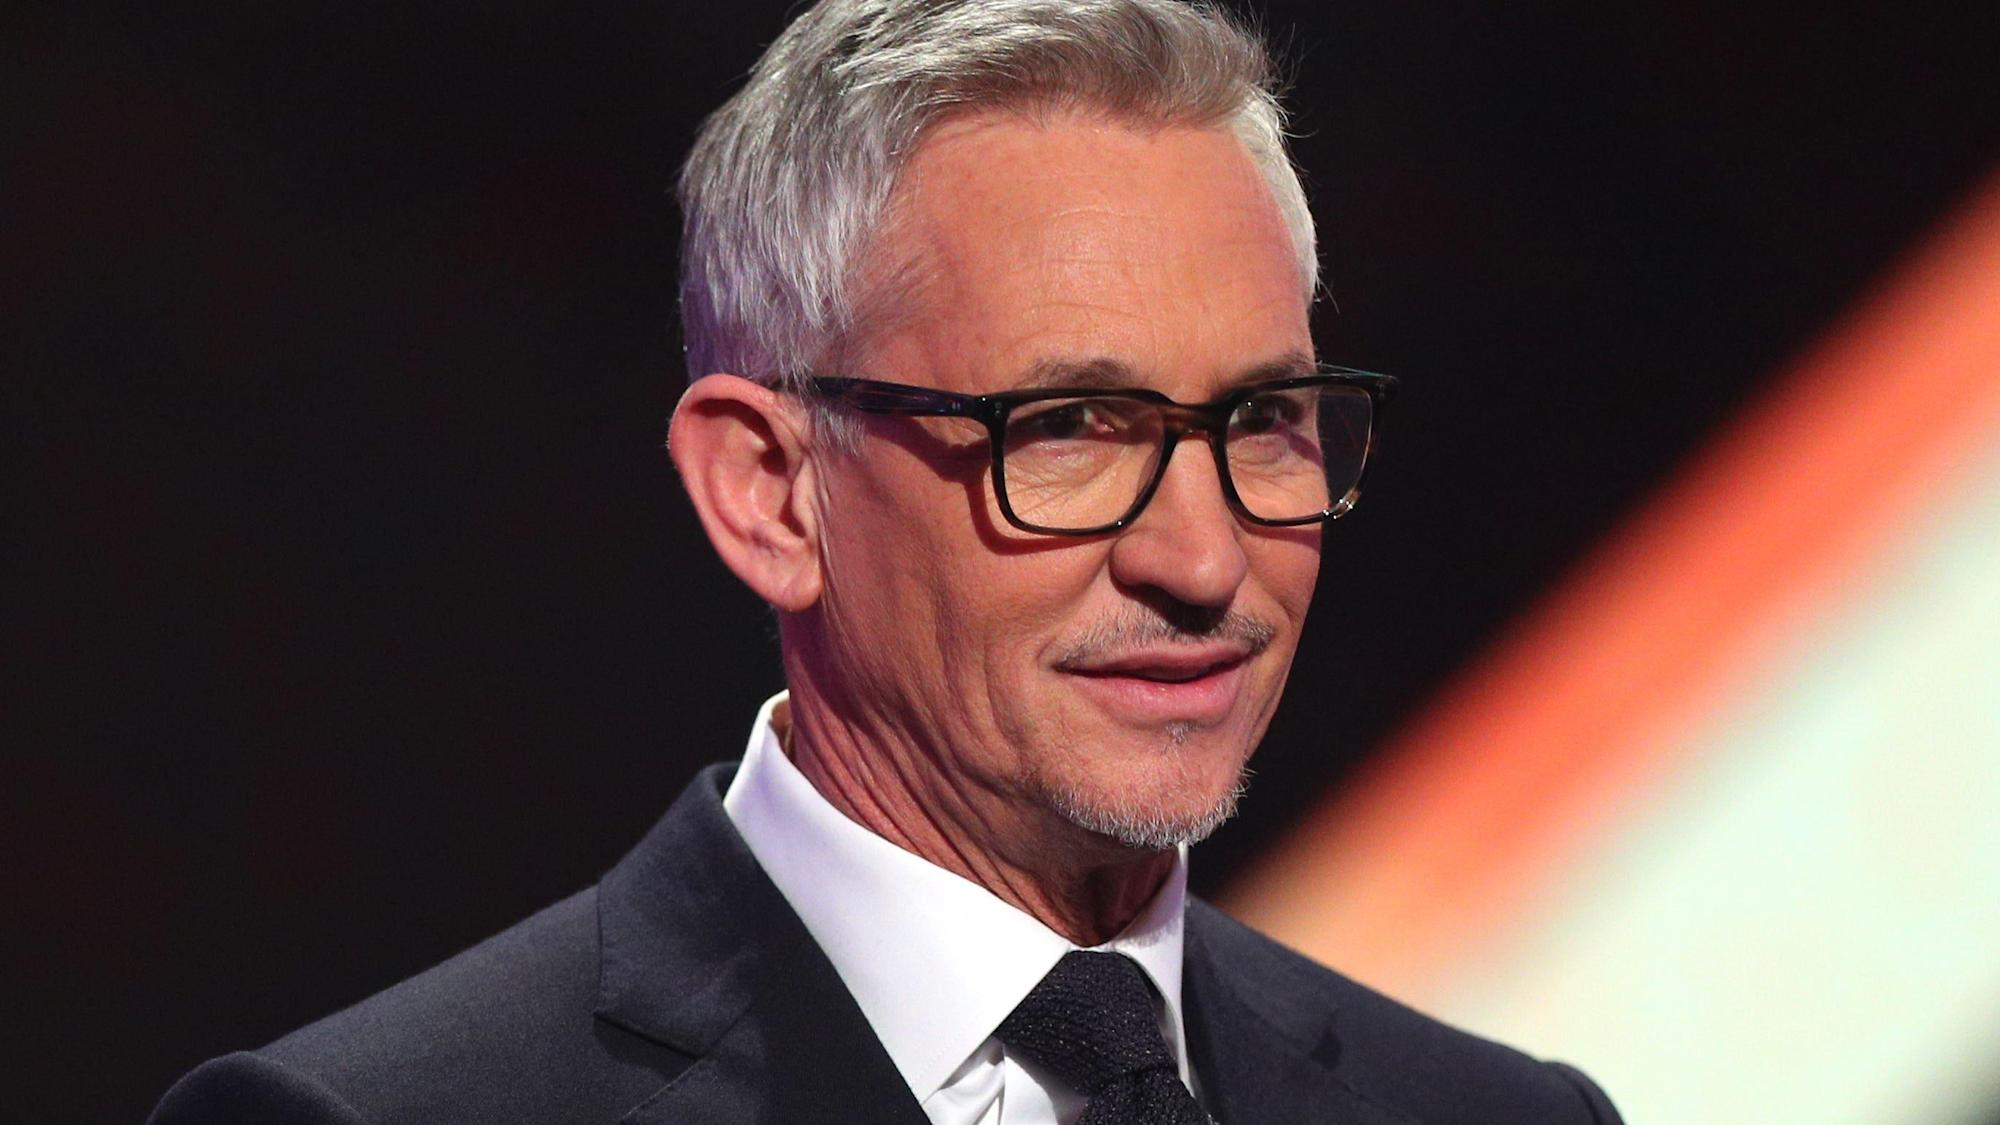 Gary Lineker targeted by HMRC over £4.9m tax bill